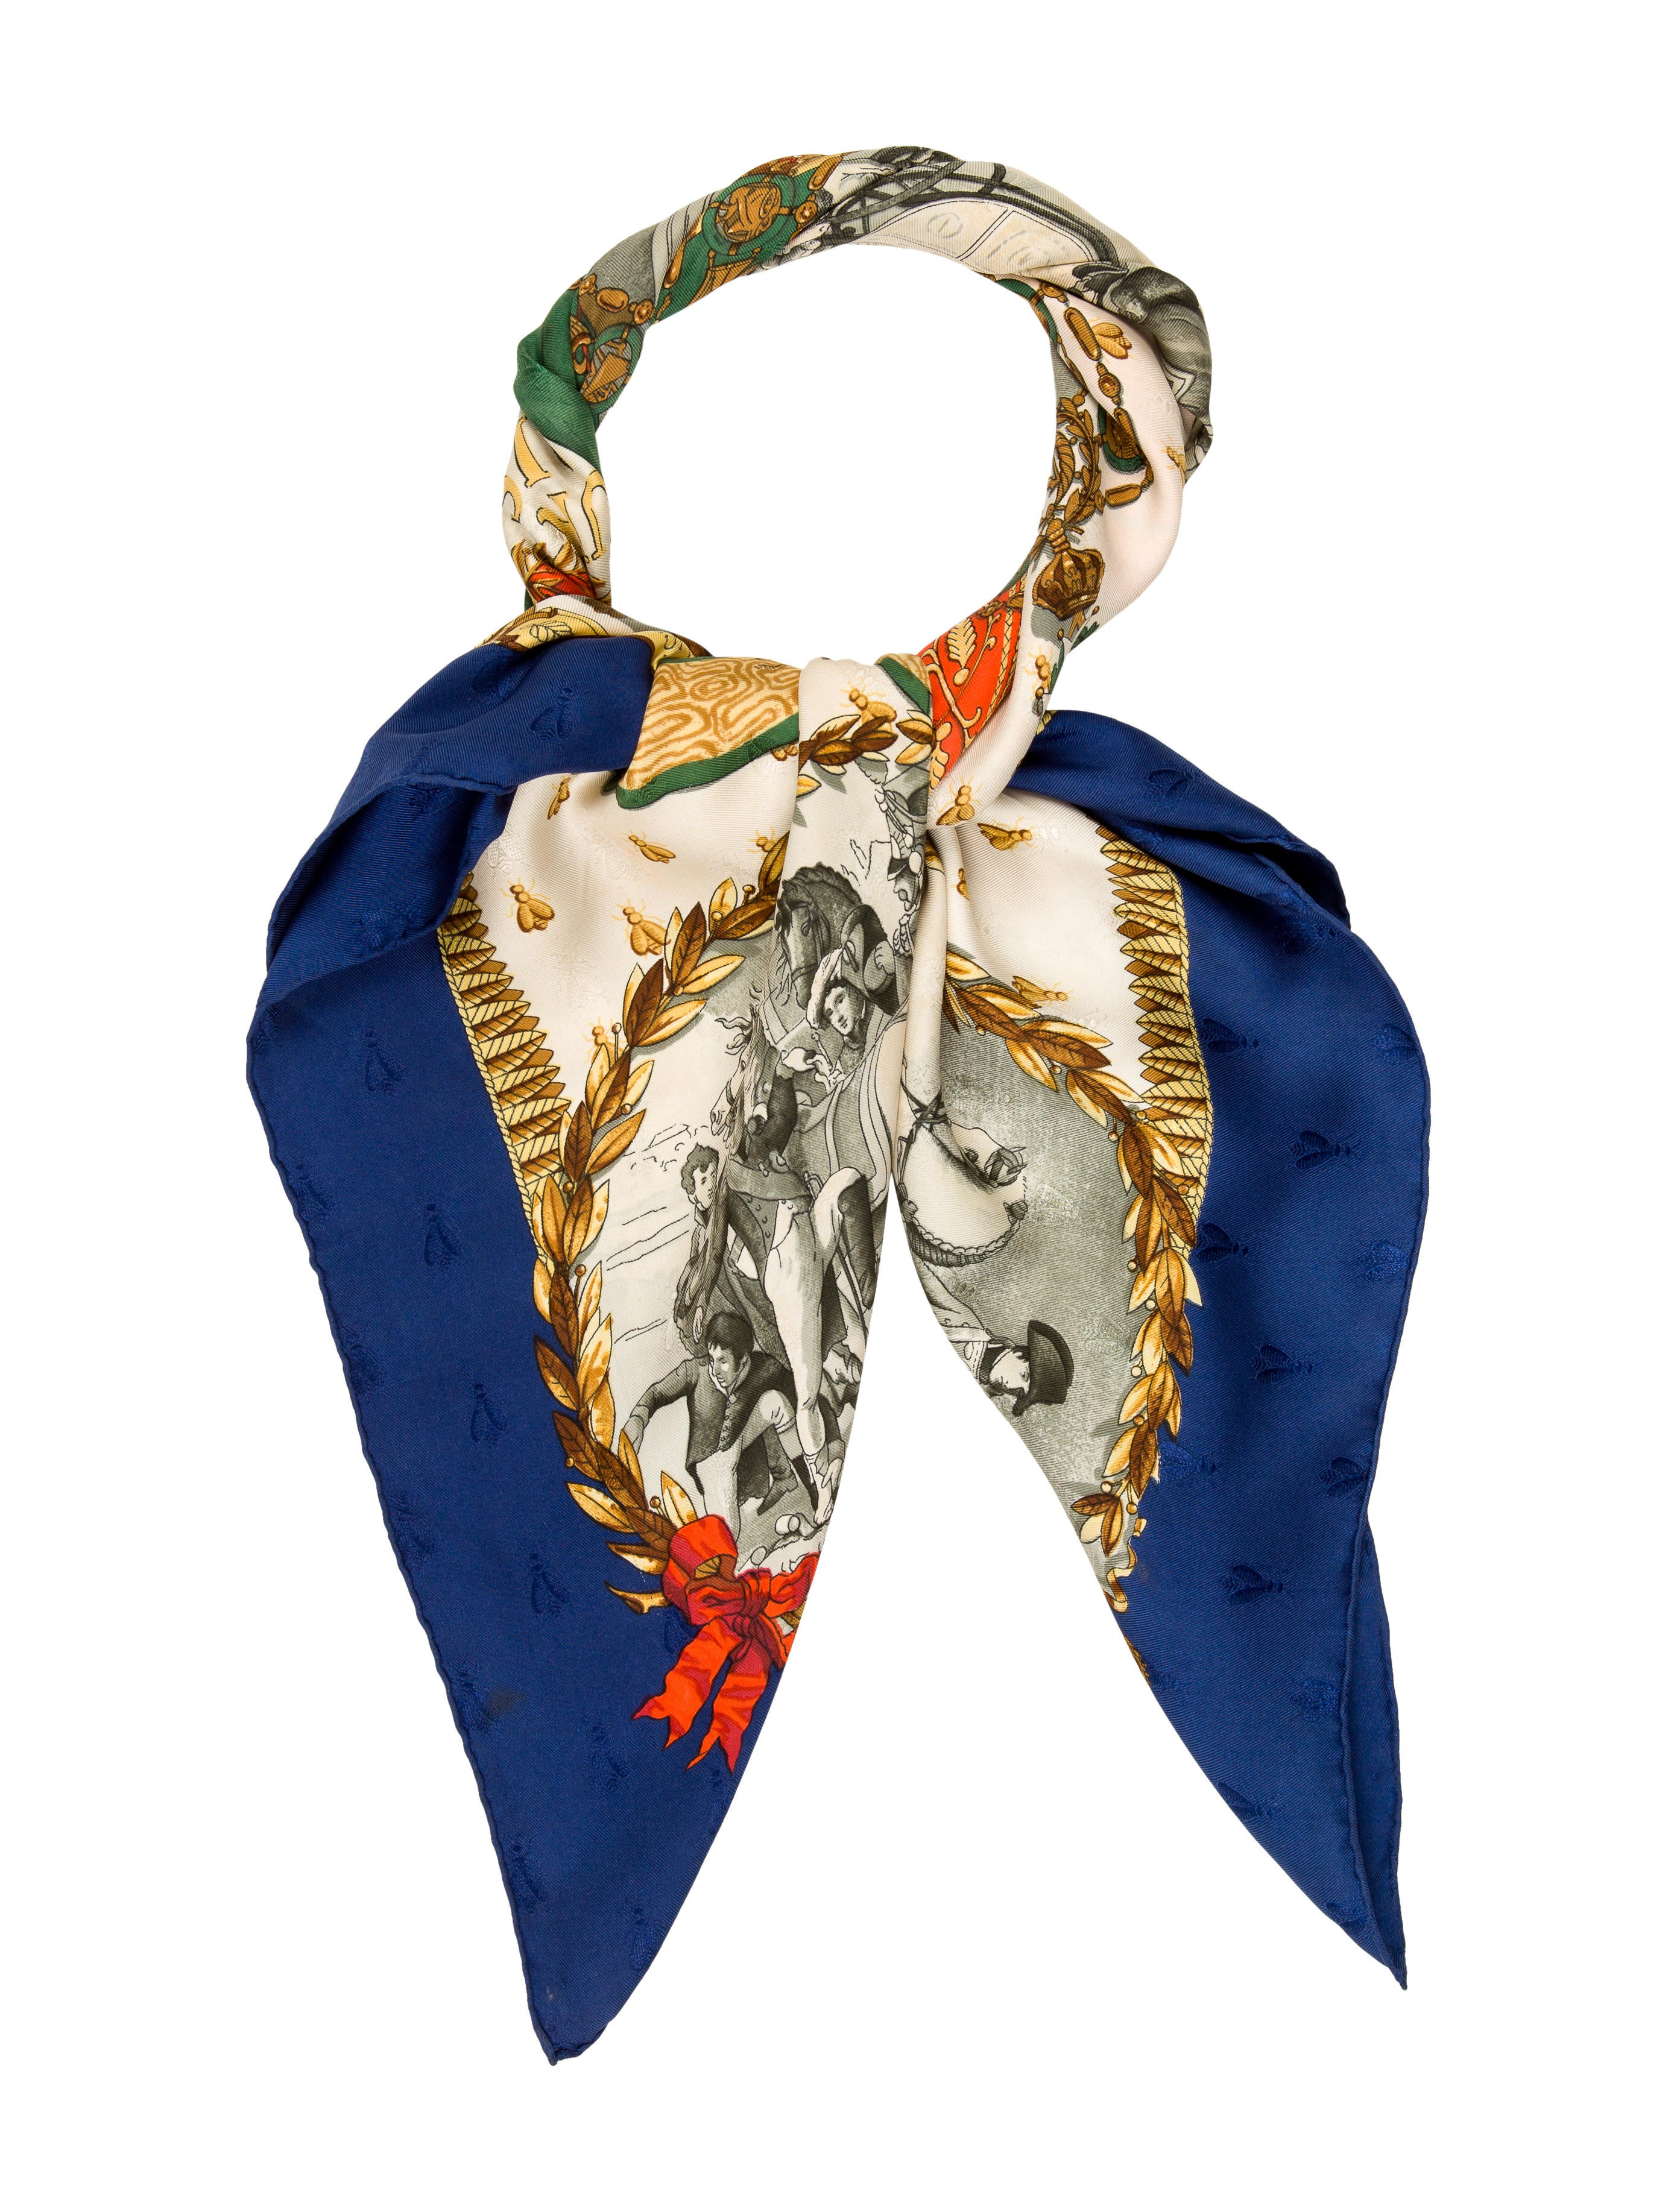 Shop Scarves Men's Accessories and get free shipping w/minimum purchase! Macy's Presents: The Edit - A curated mix of fashion and inspiration Check It Out .